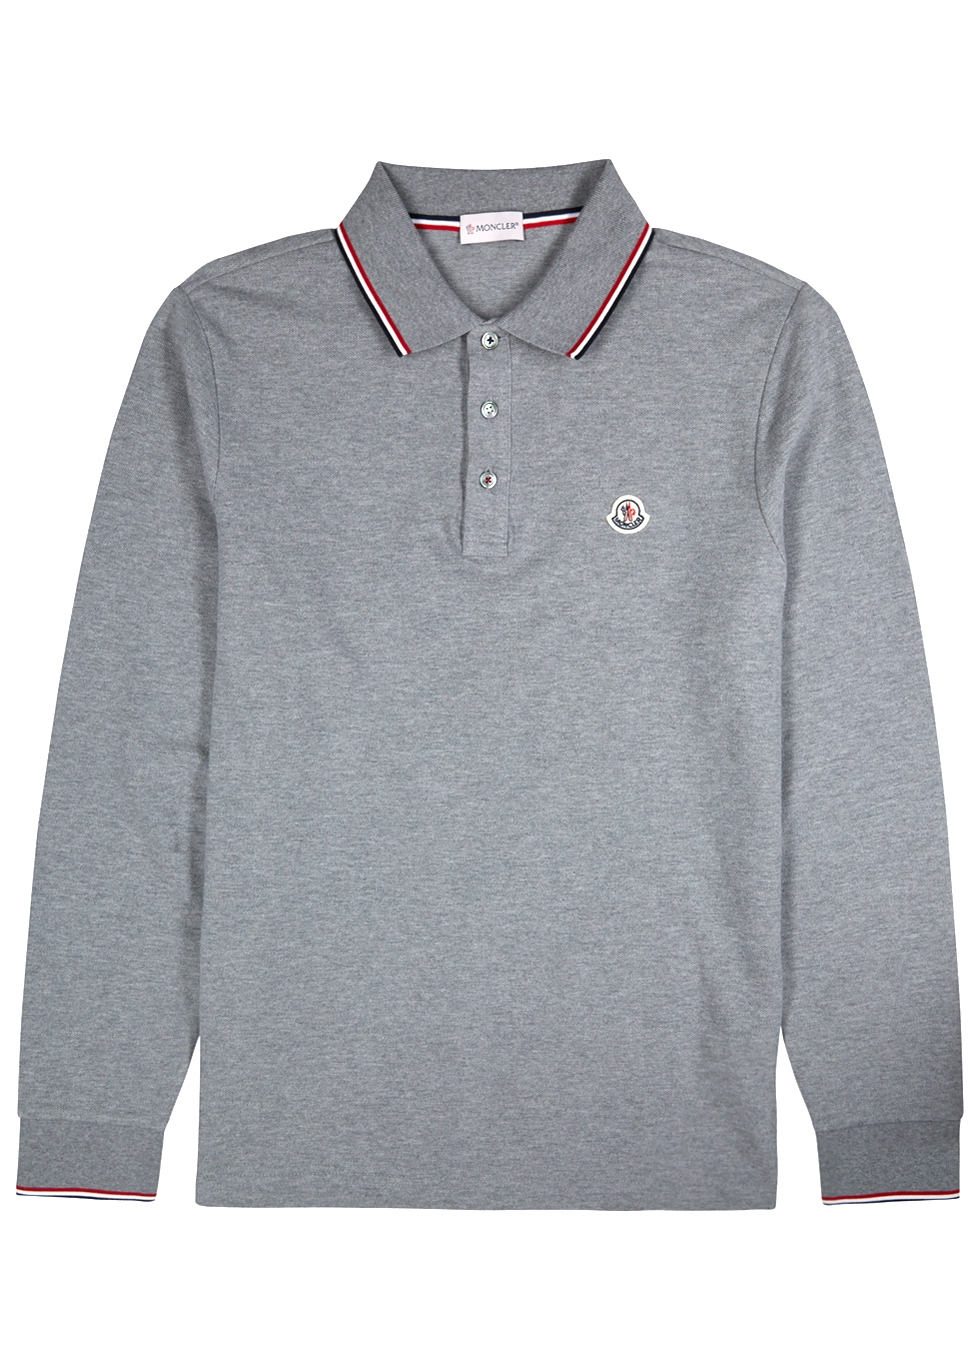 Grey piqué cotton polo shirt - Moncler